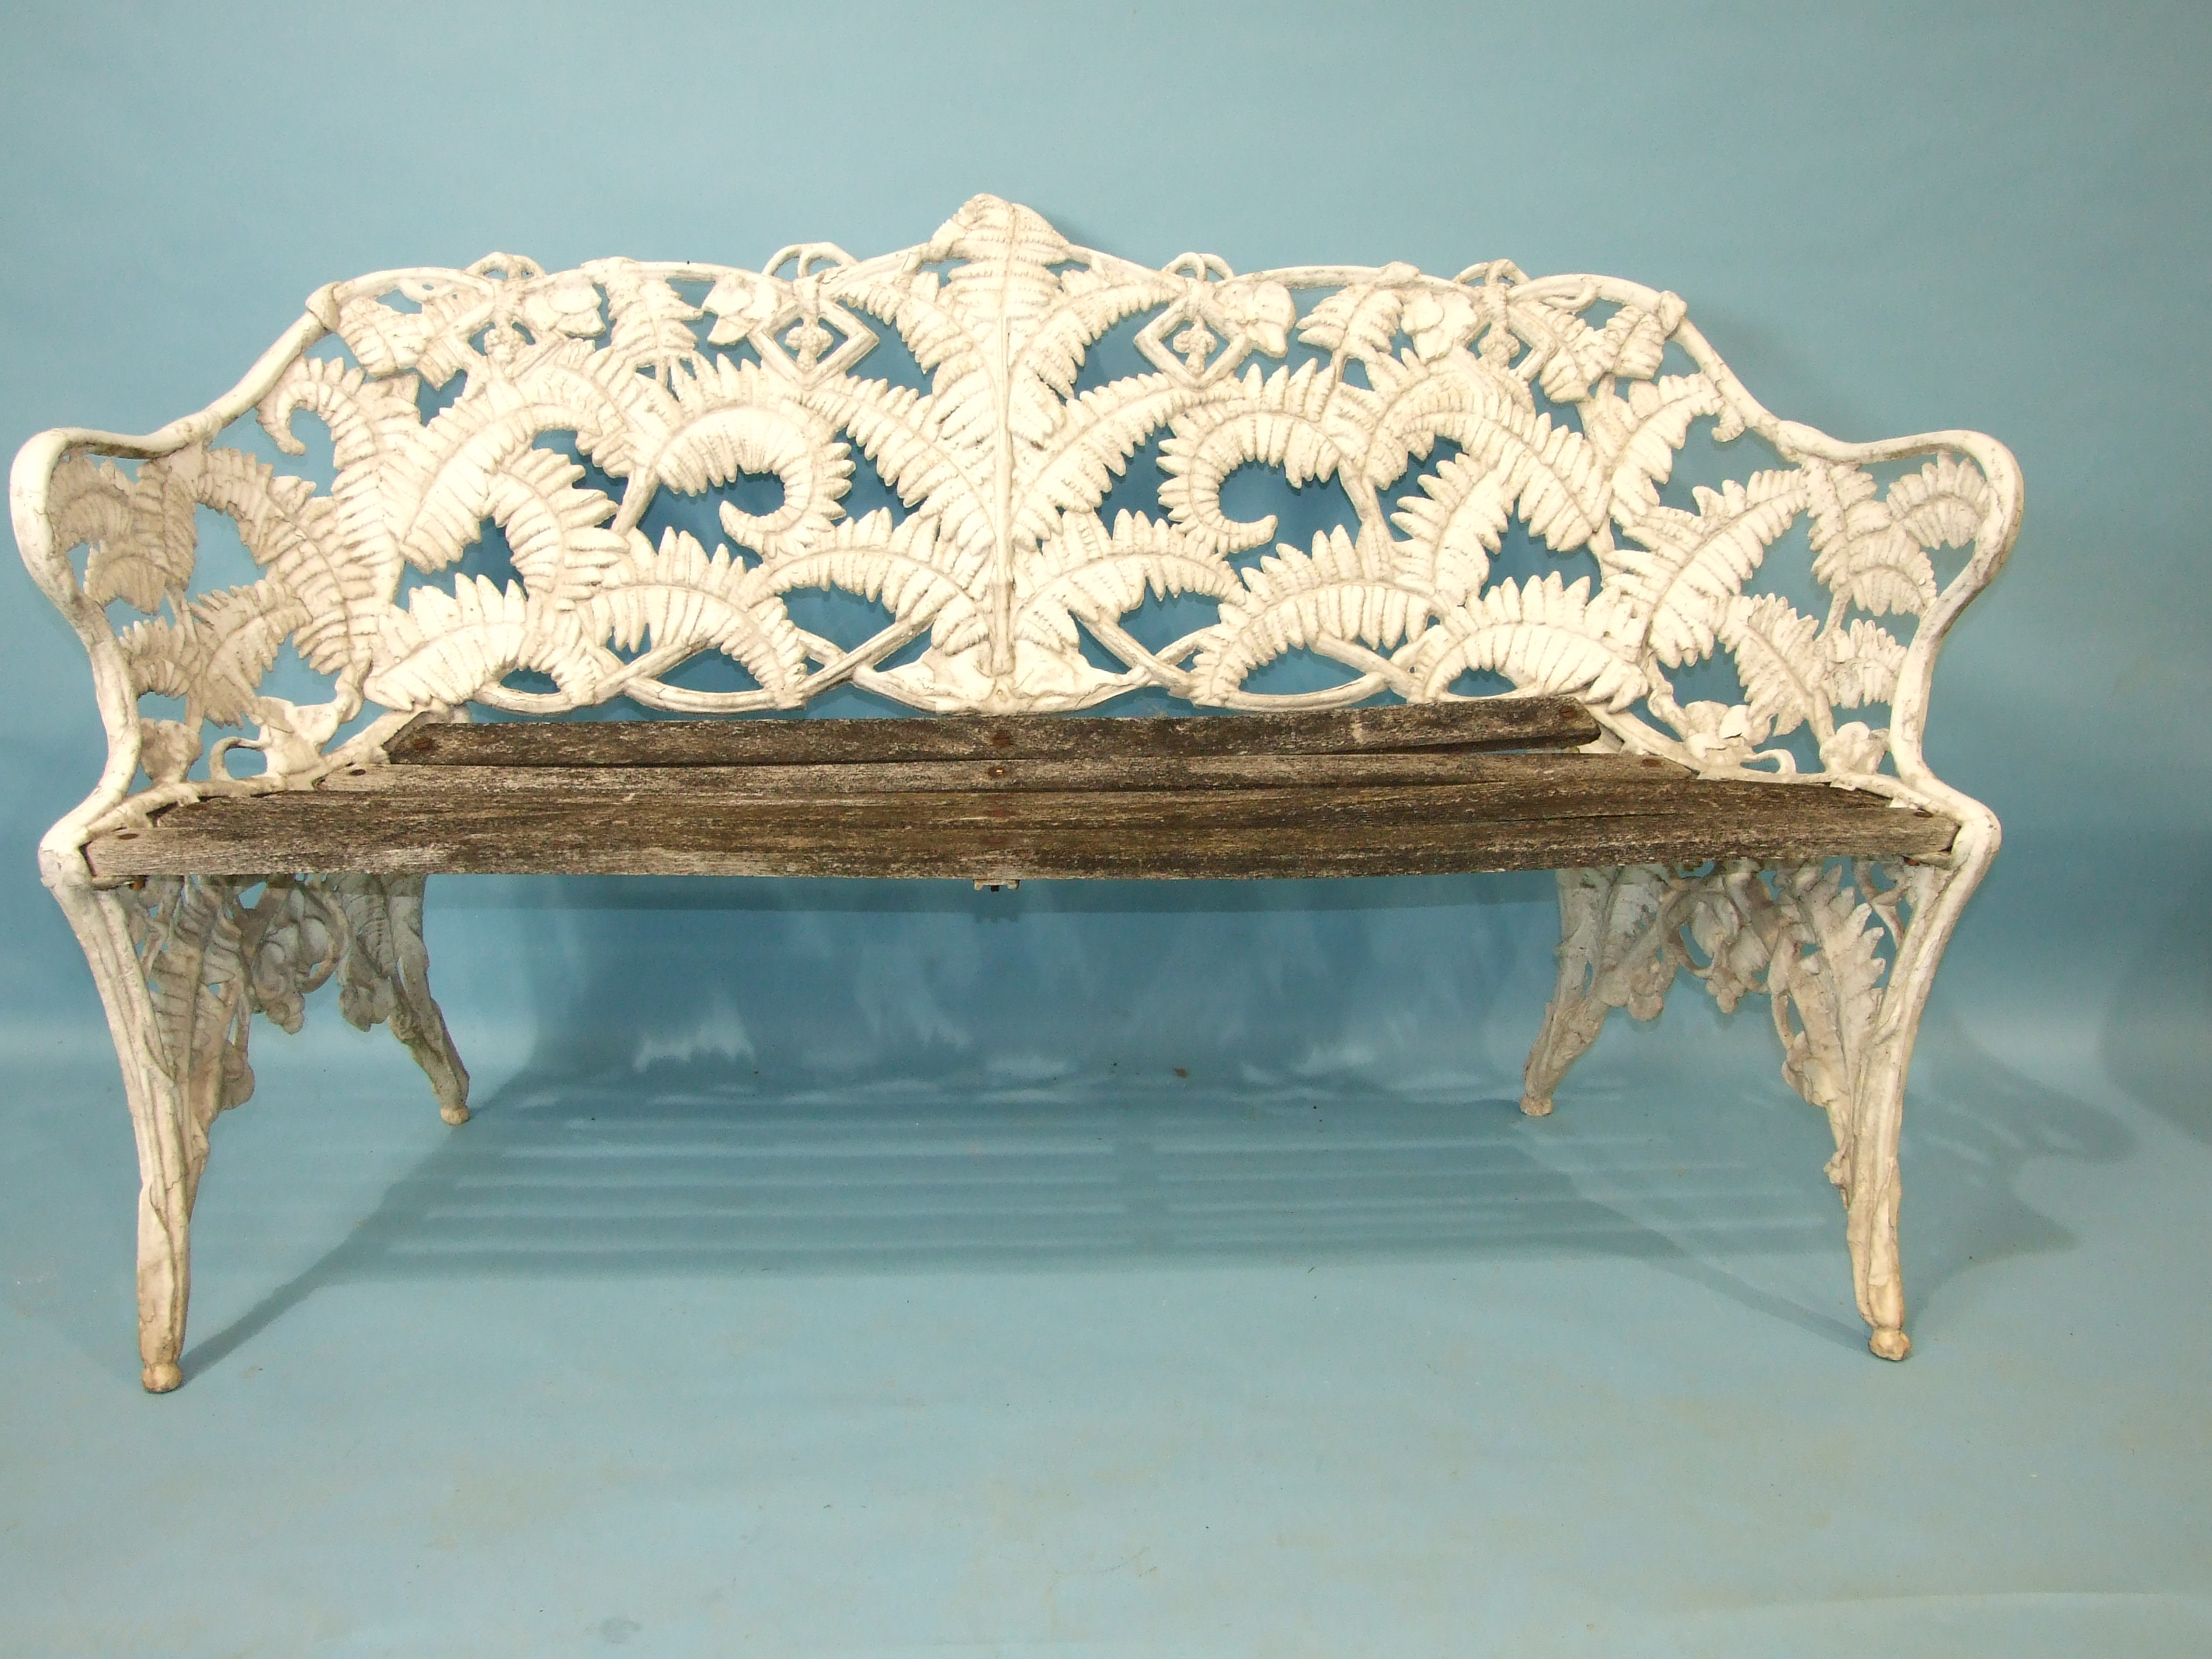 A cast alloy Coalbrookedale-style fern pattern garden bench, (the wooden slatted seat in need of - Image 2 of 5